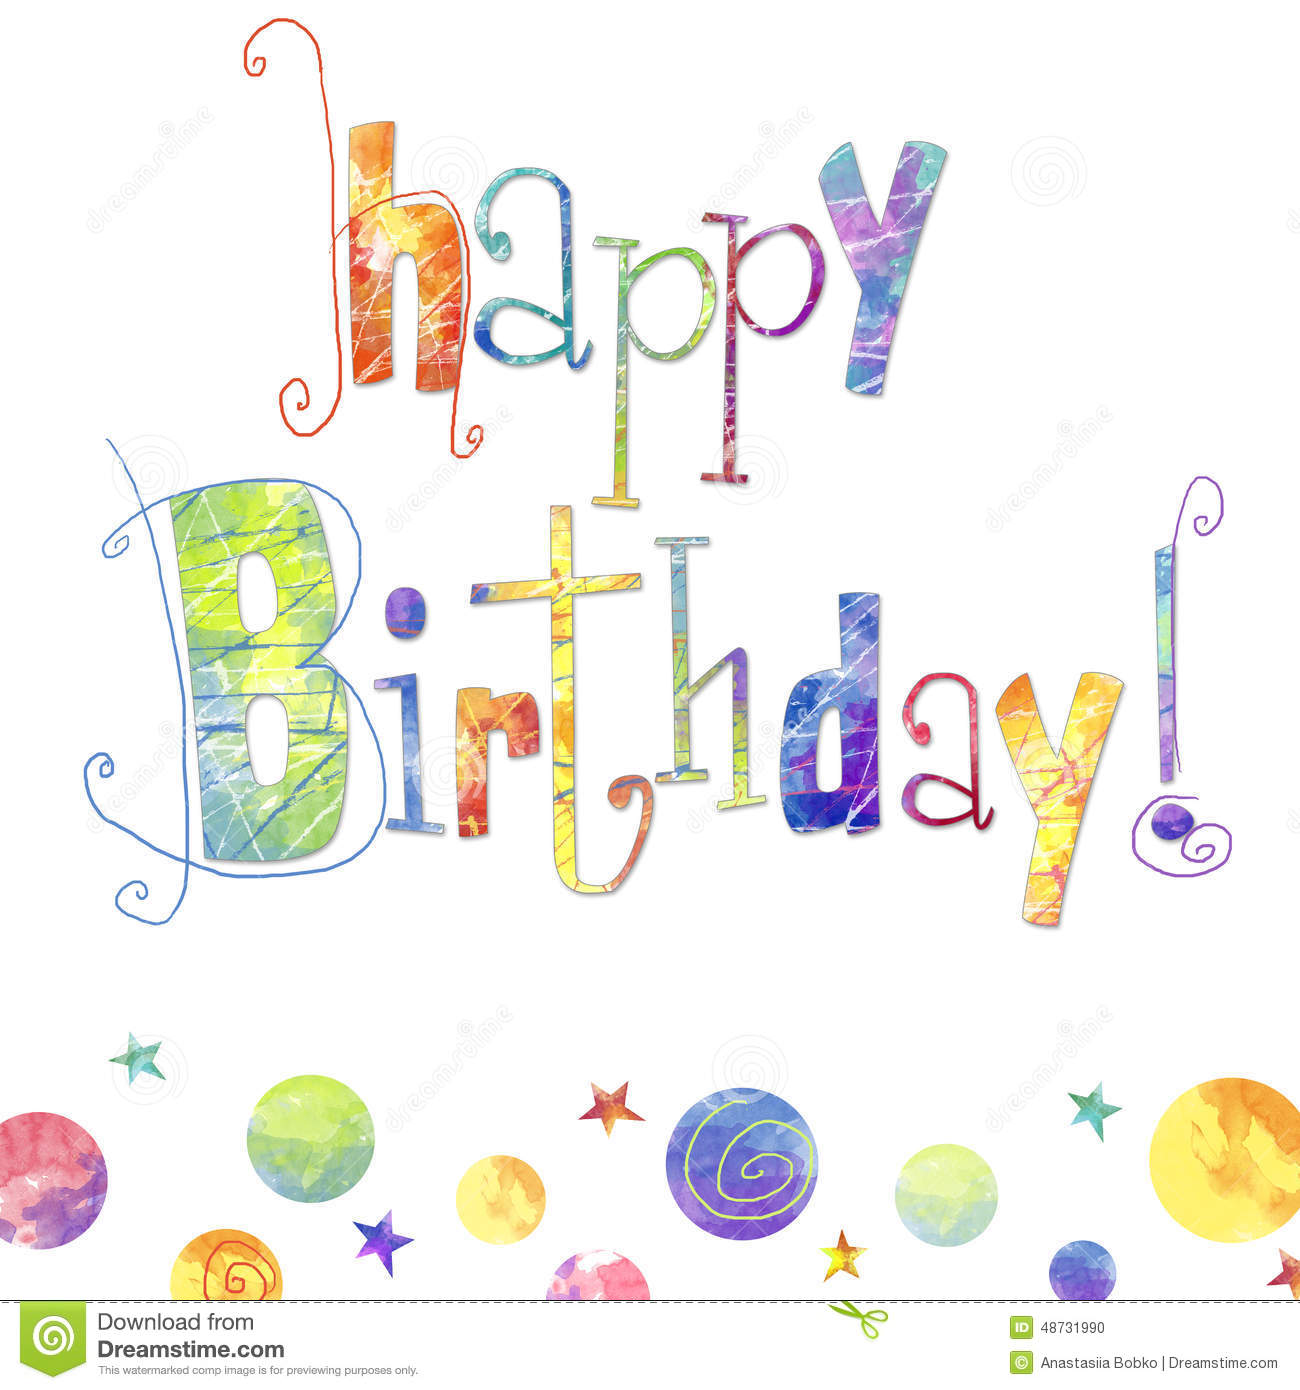 Happy birthday greeting card with text drops and stars in bright download happy birthday greeting card with text drops and stars in bright colors birthday m4hsunfo